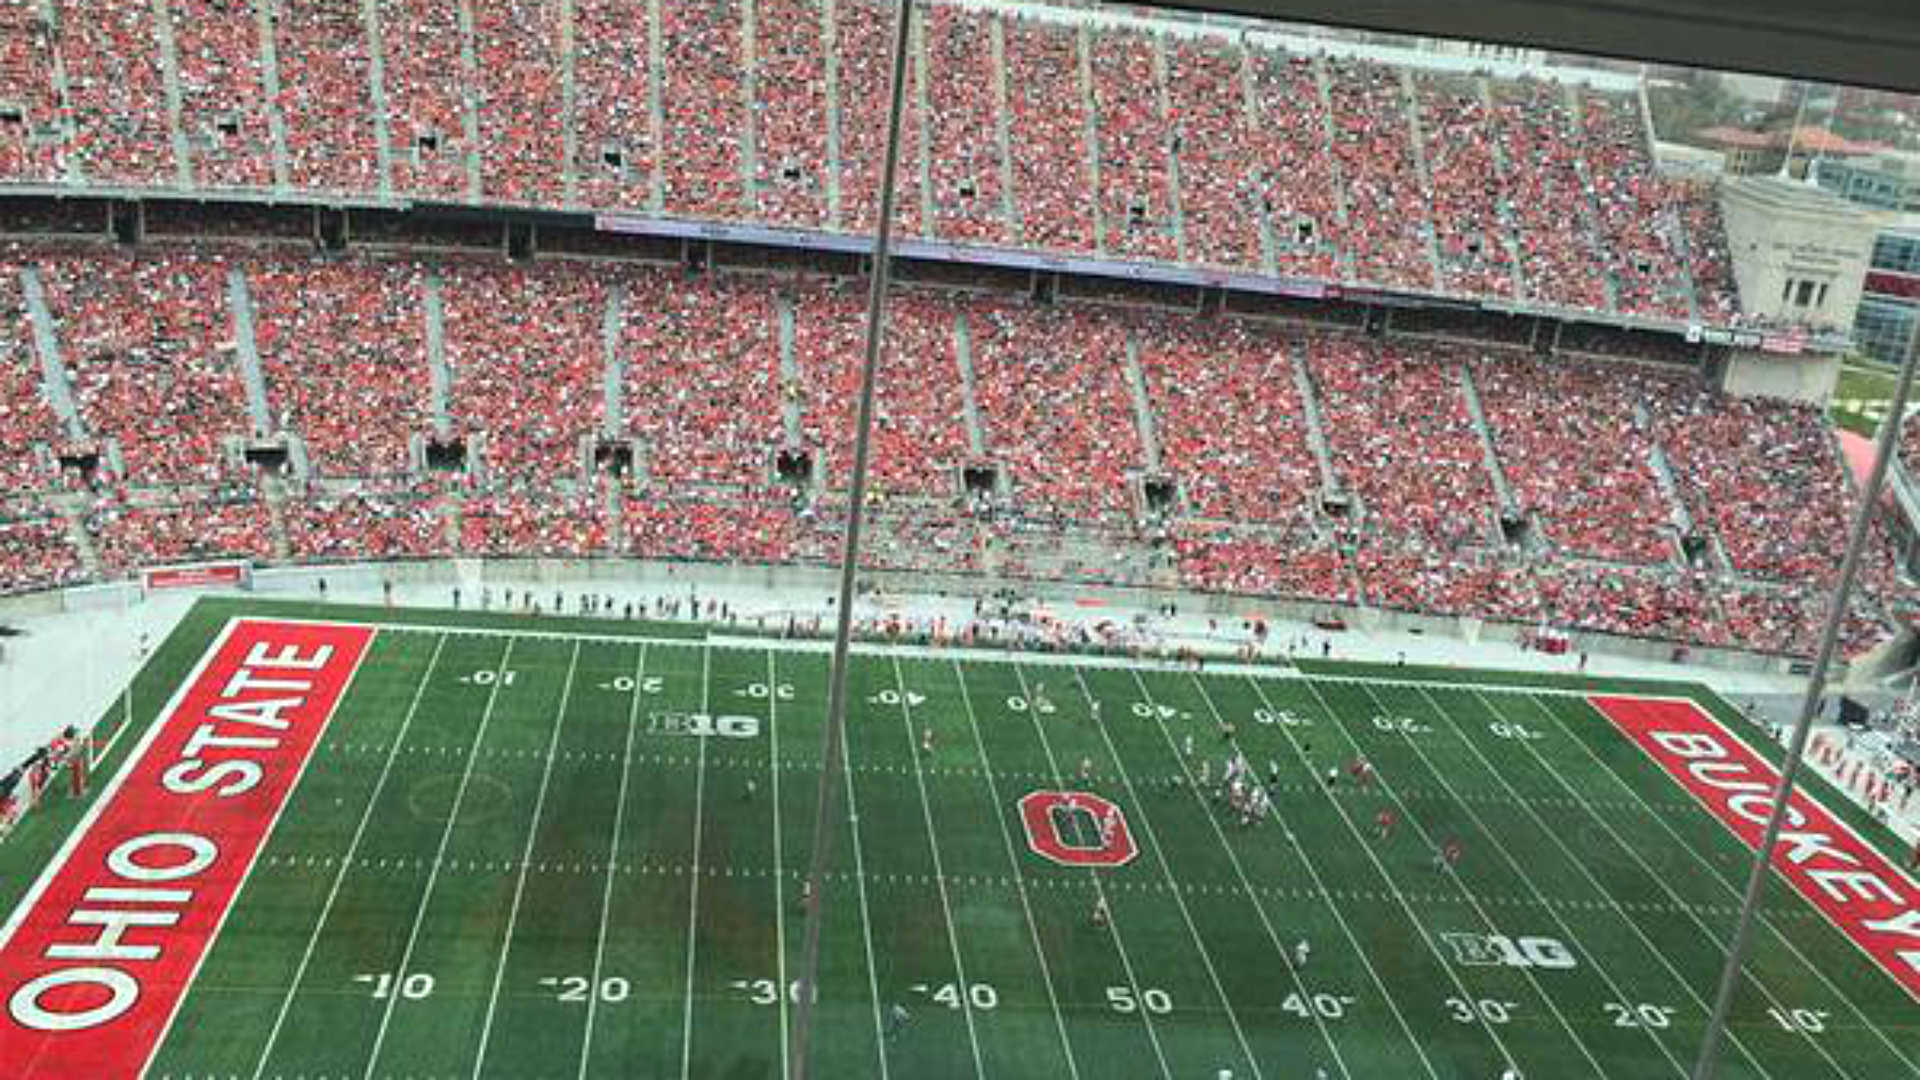 Ohio State sets spring game attendance record at 99,931